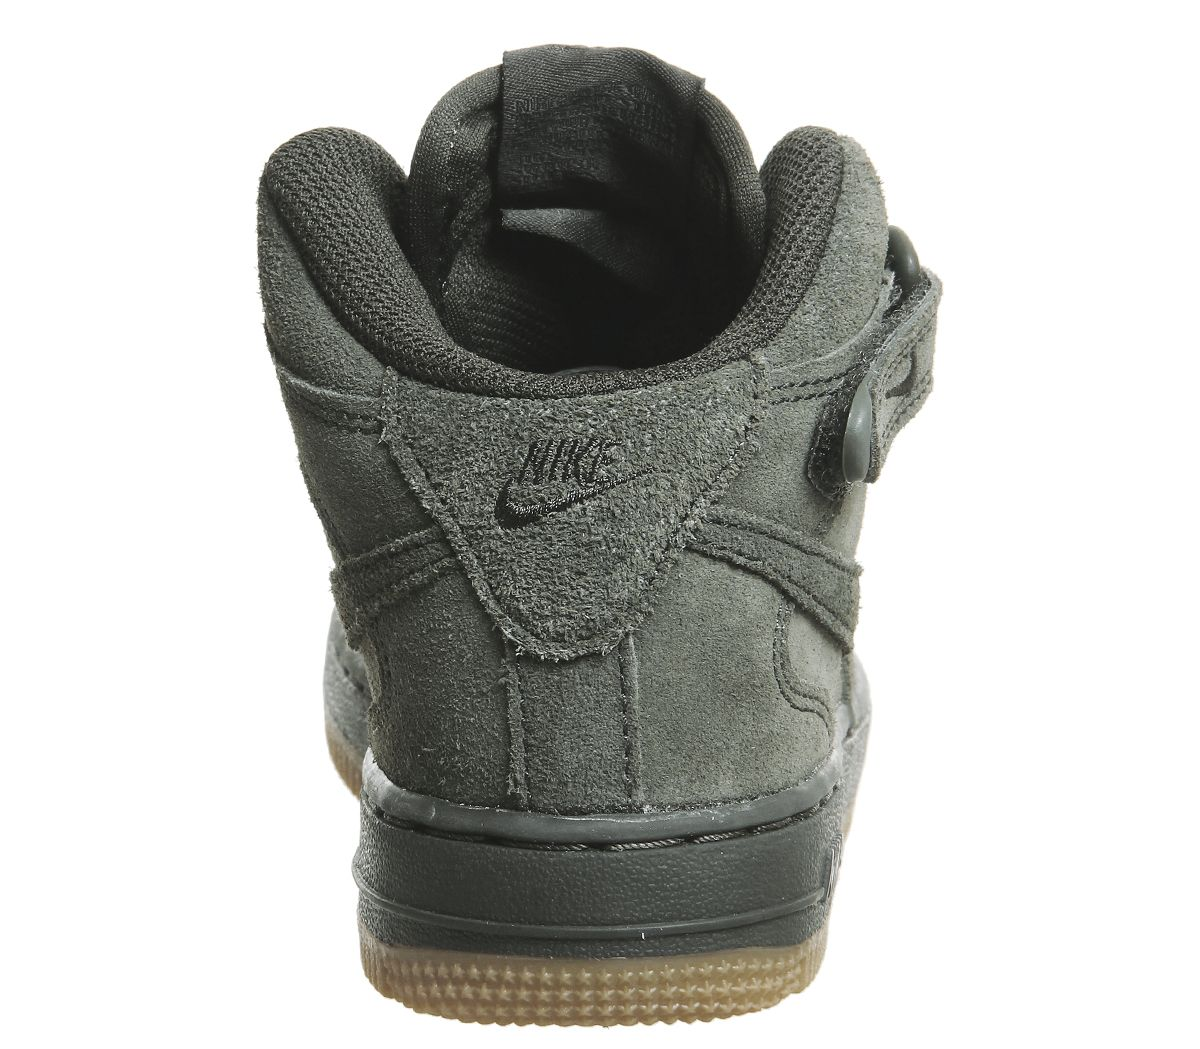 5a855b9731c Nike Af1 Mid Ps Trainers Sequoia Gum - Unisex